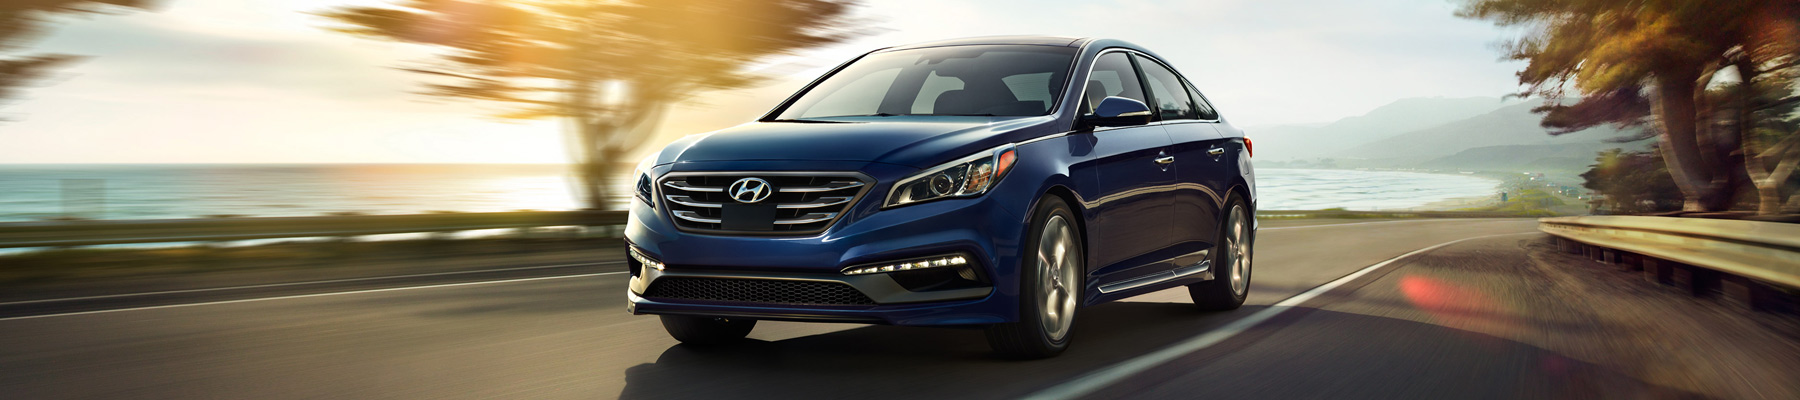 2017 Hyundai Sonata model